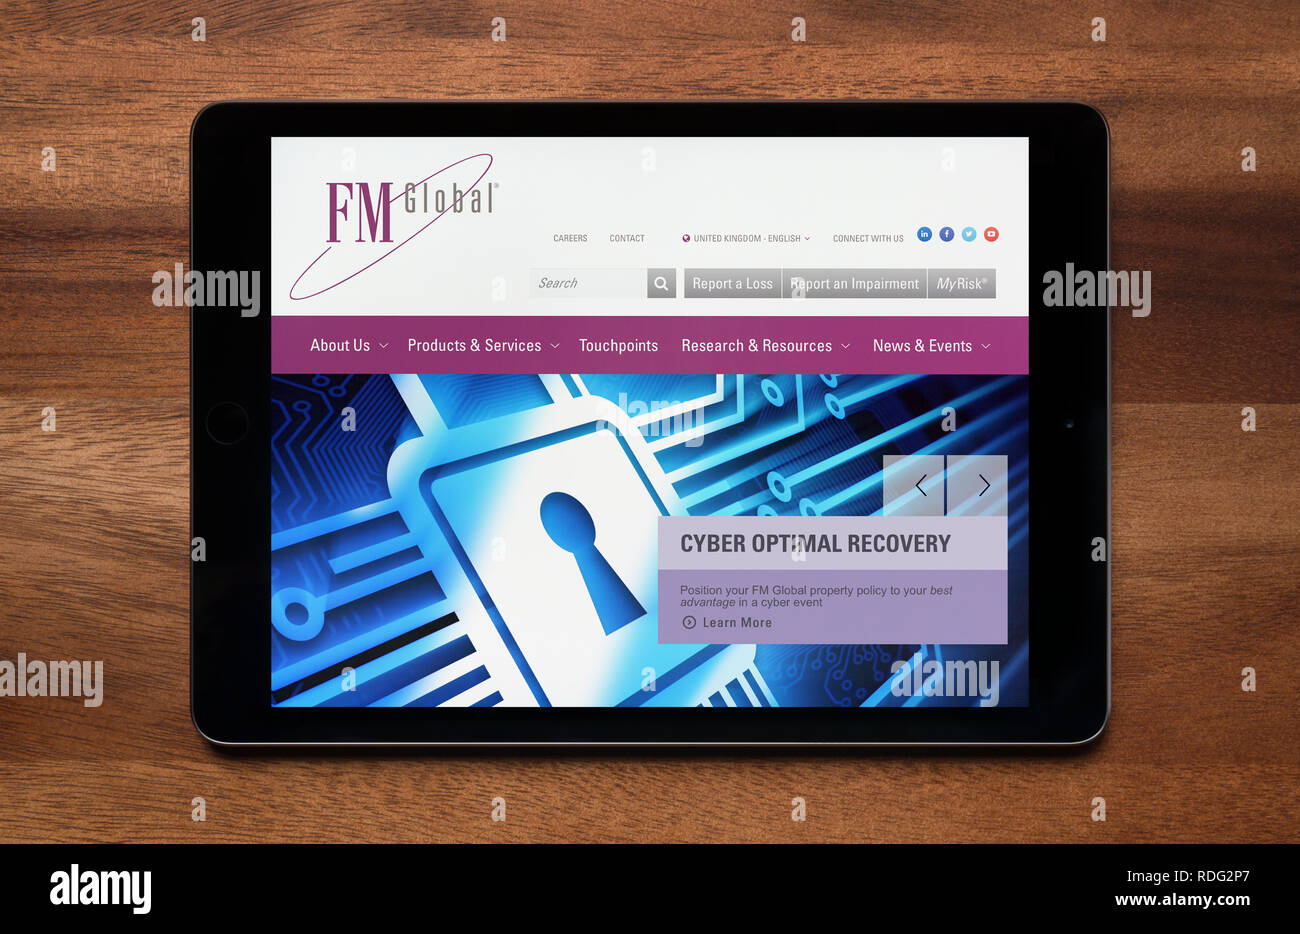 The website of FM Global is seen on an iPad tablet, which is resting on a wooden table (Editorial use only). - Stock Image